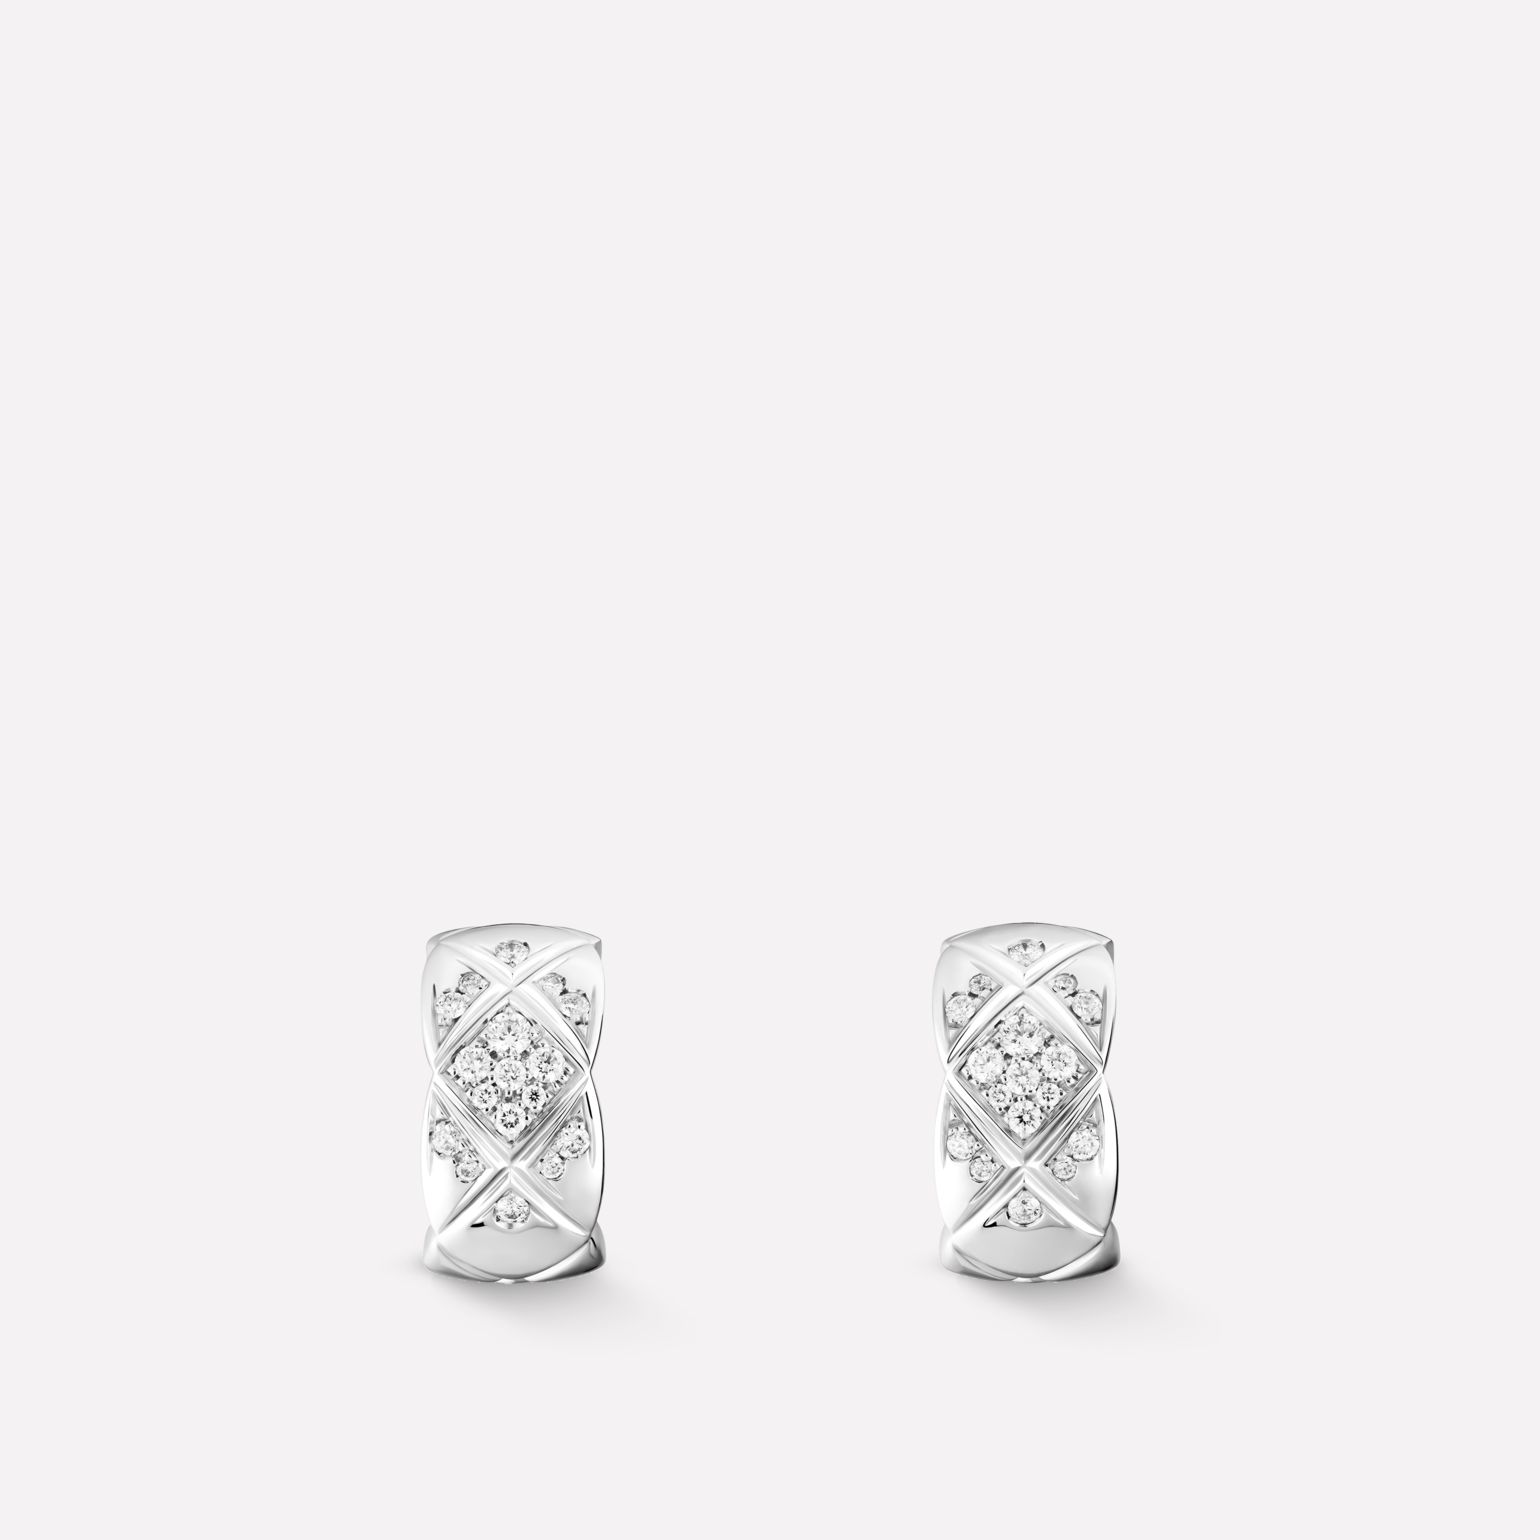 Coco Crush earrings Quilted motif in 18K white gold and diamonds